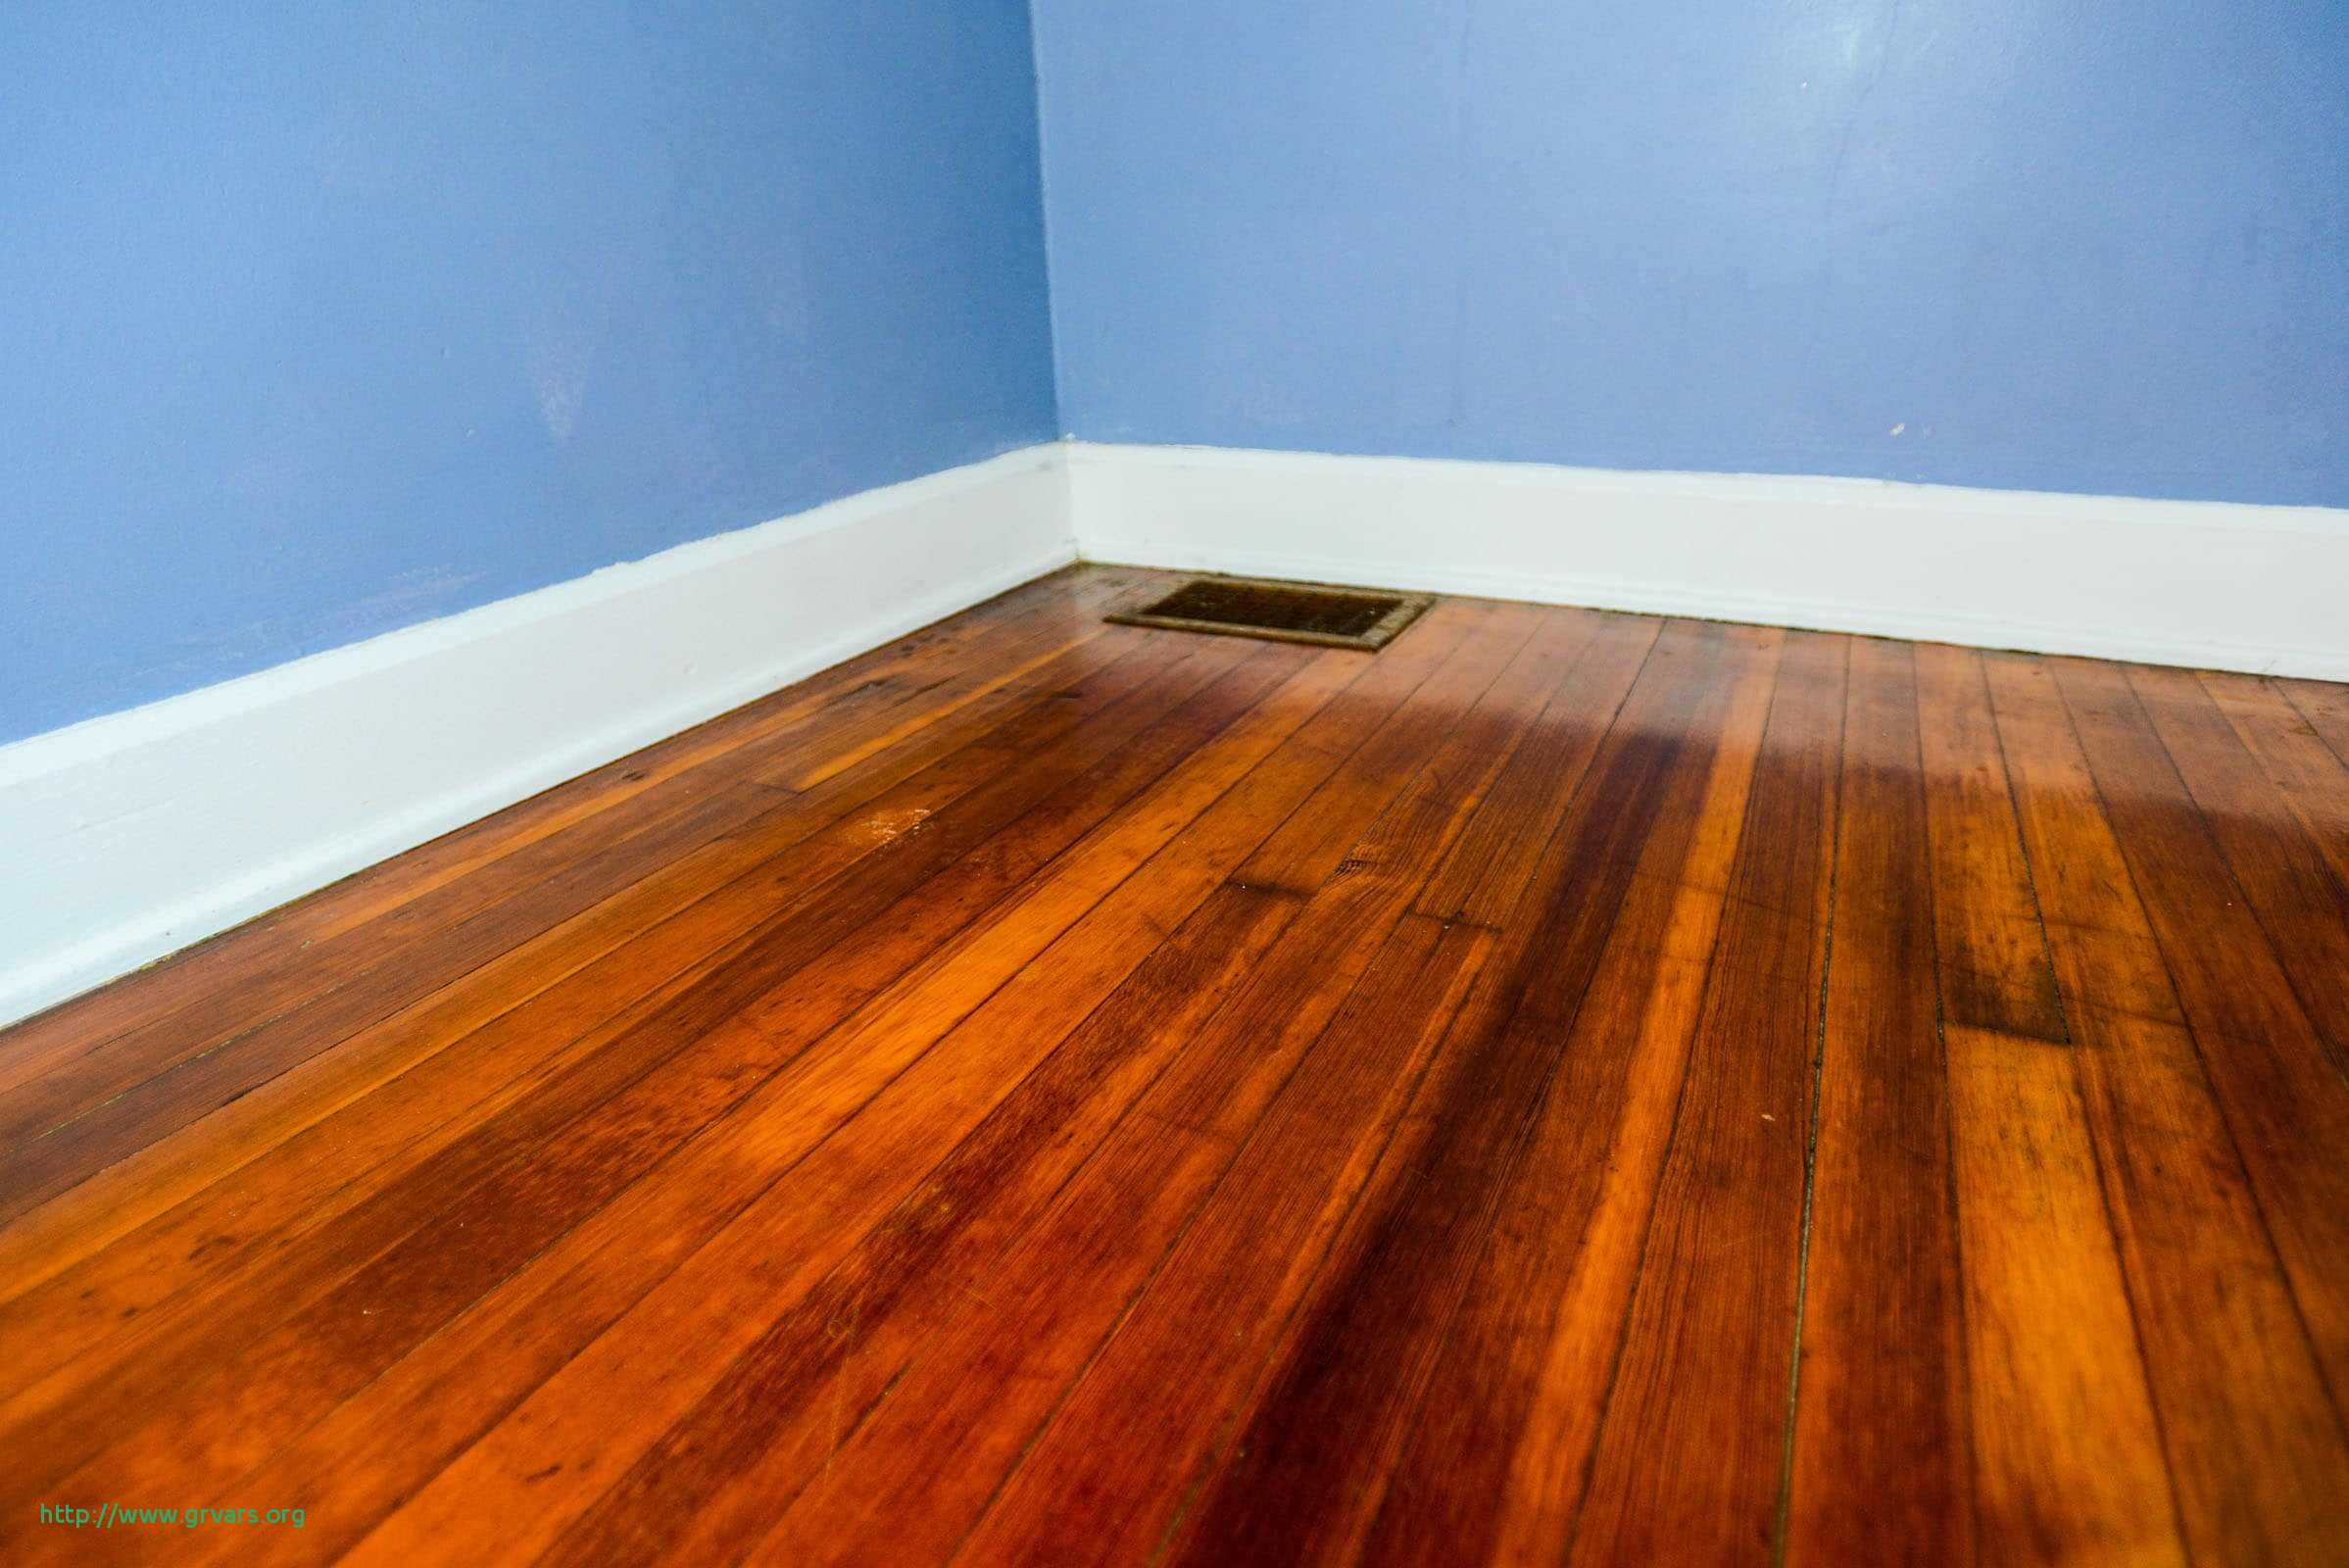 can you glue down hardwood flooring to concrete of 23 unique wood floor glue with moisture barrier ideas blog for wood floor glue with moisture barrier luxe how to silence a squeaking floor